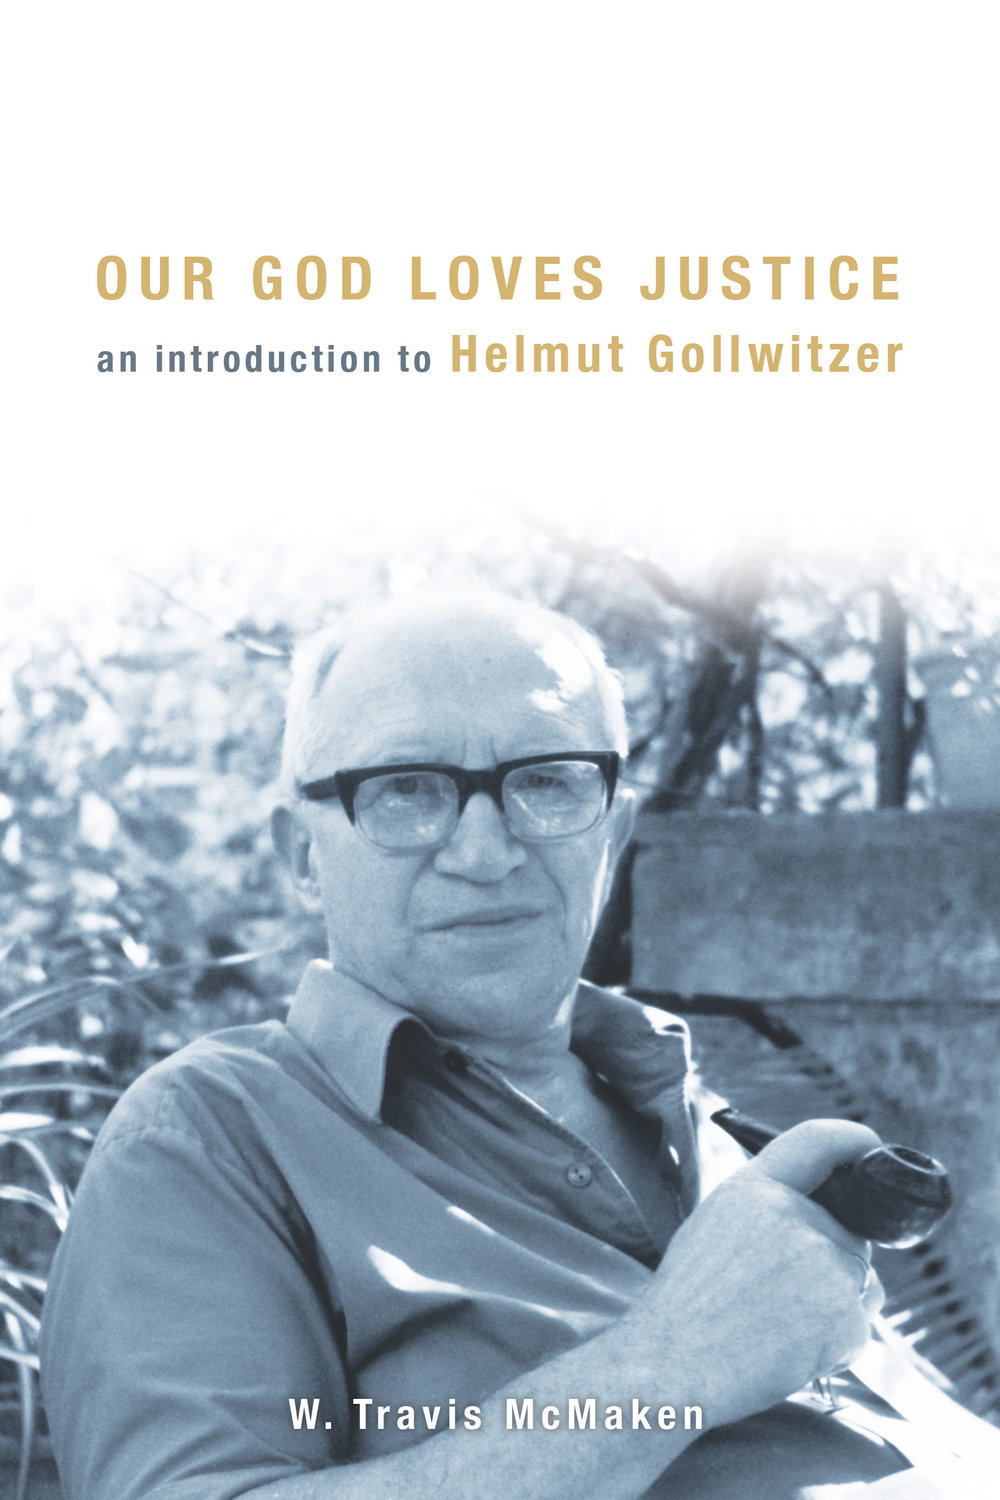 - This piece is part of a series of responses to the book Our God Loves Justice: An Introduction to Helmut Gollwitzer by W. Travis McMaken. We will be posting five responses to the book as part of this series. Our fourth contribution is from Stephen Waldron.Stephen Waldron is a writer who lives in Waltham, Massachusetts. He is a co-host of the podcast Theology and Socialism.